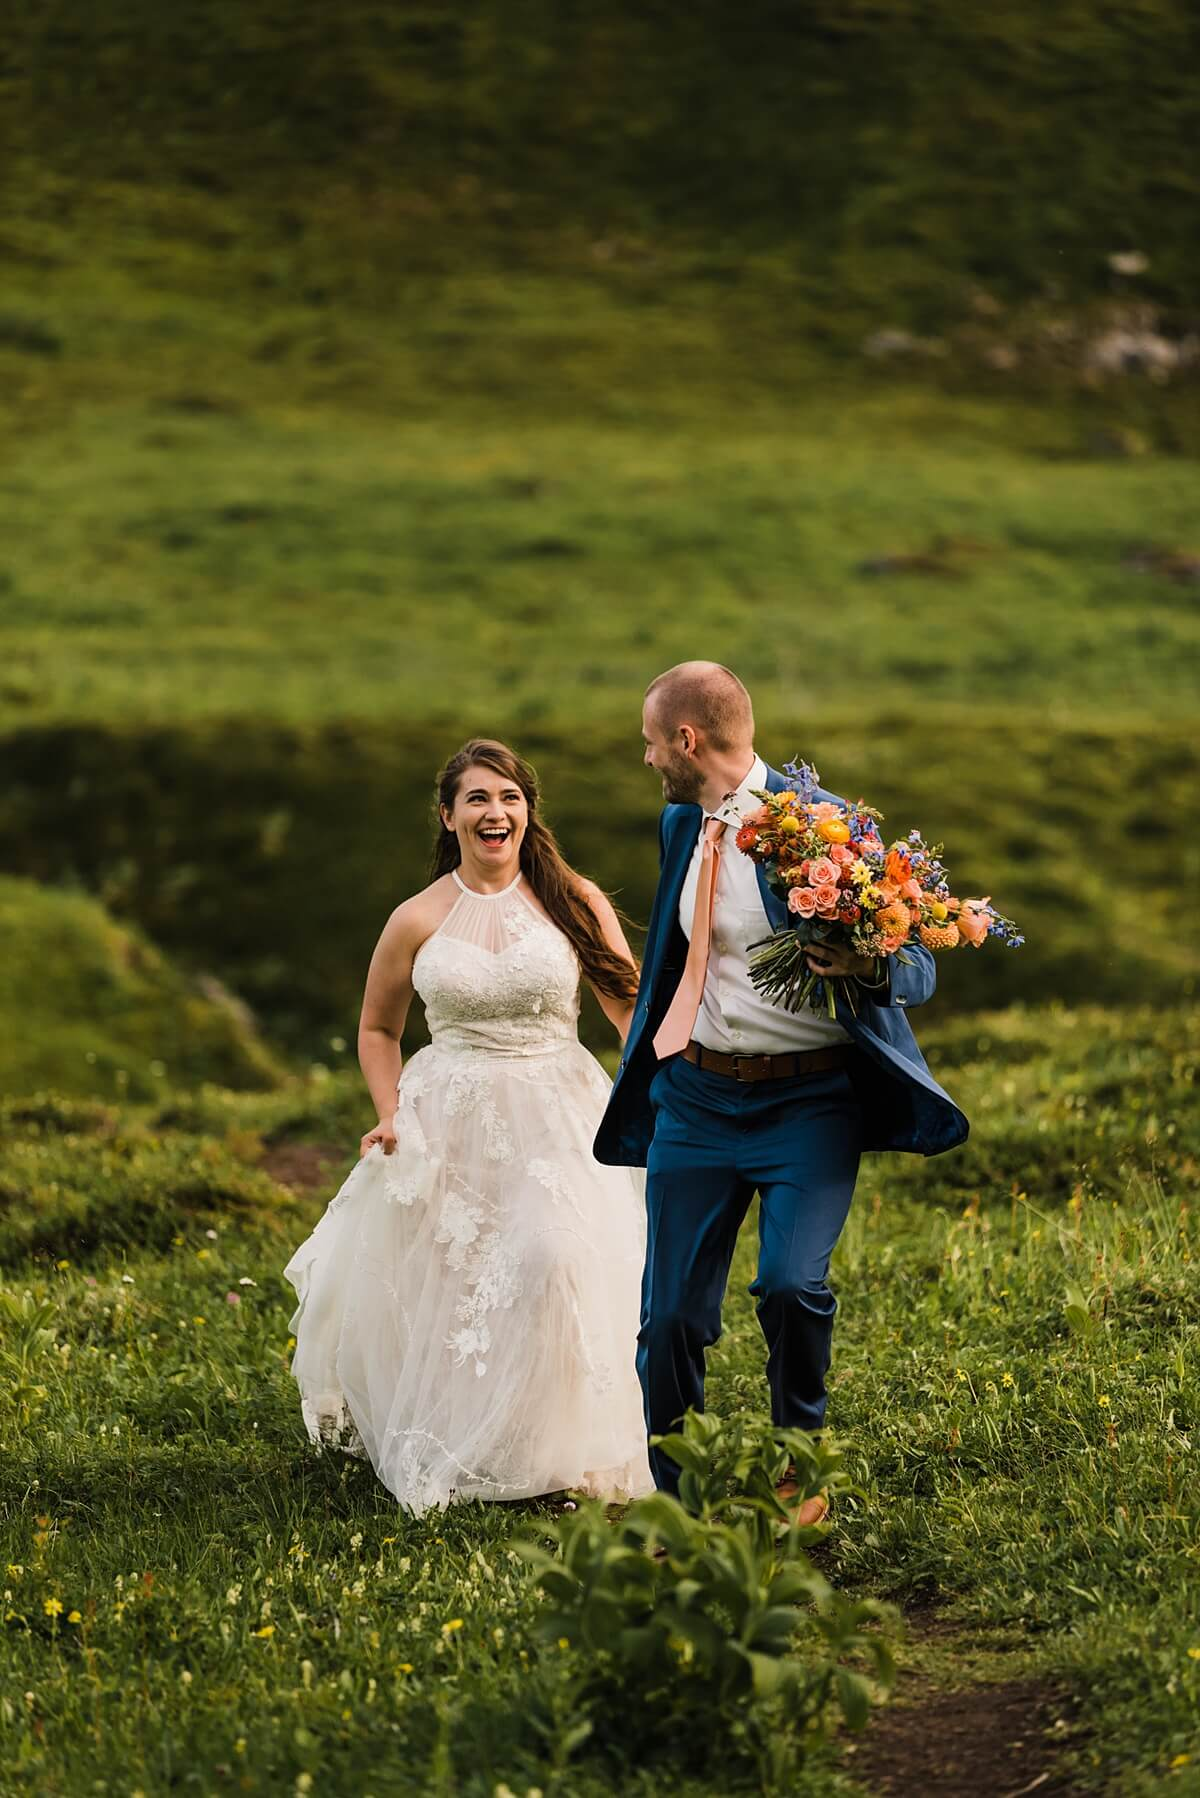 Alaska,adventure elopement,alaska adventure elopement photographer,anchorage,elope your life,hatcher pass,sam starns,